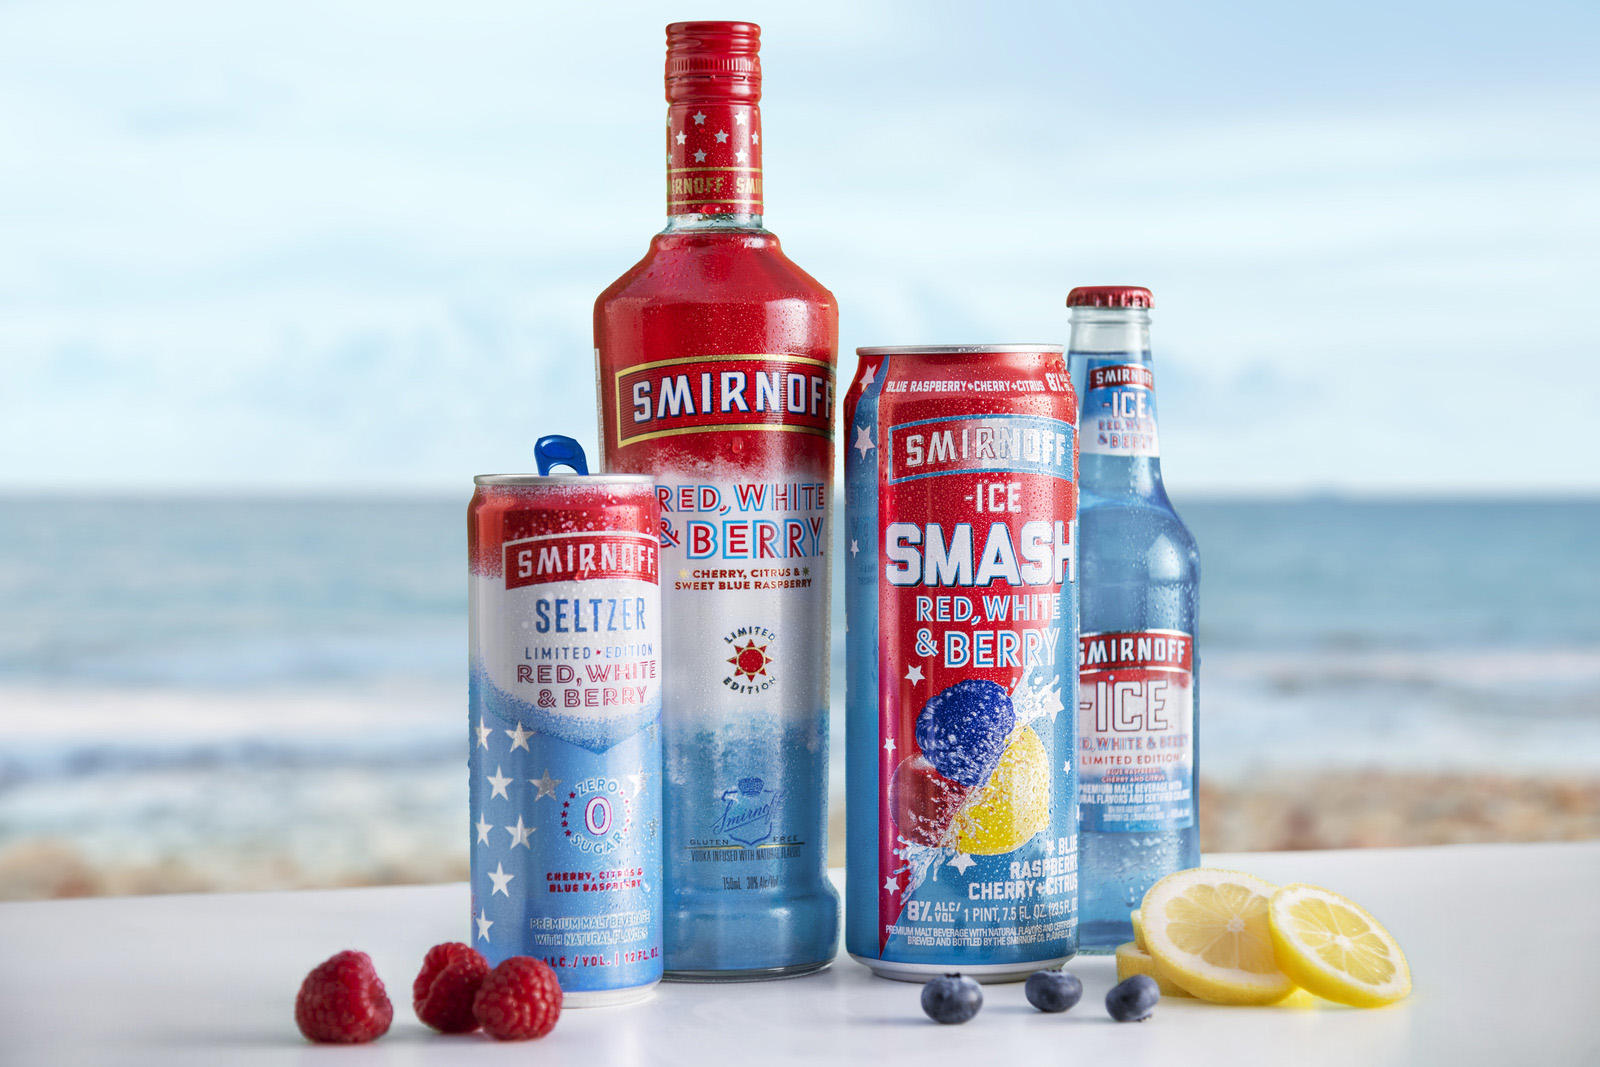 Smirnoff is unveiling a new addition to the Red, White & Berry family - Smirnoff Ice SMASH Red, White & Berry.